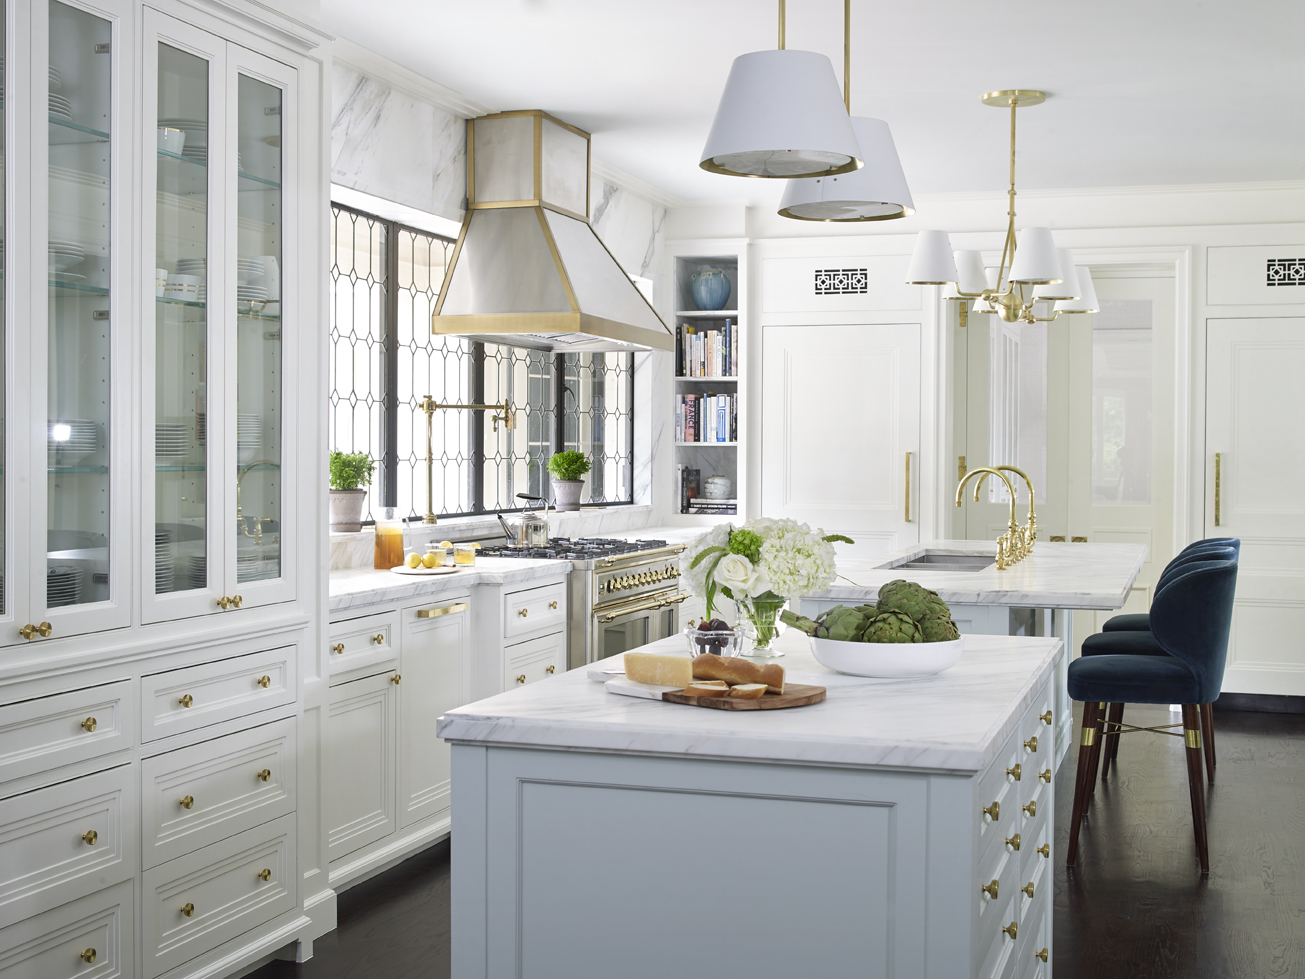 The kitchenis bright and neutral with brass accents throughout.